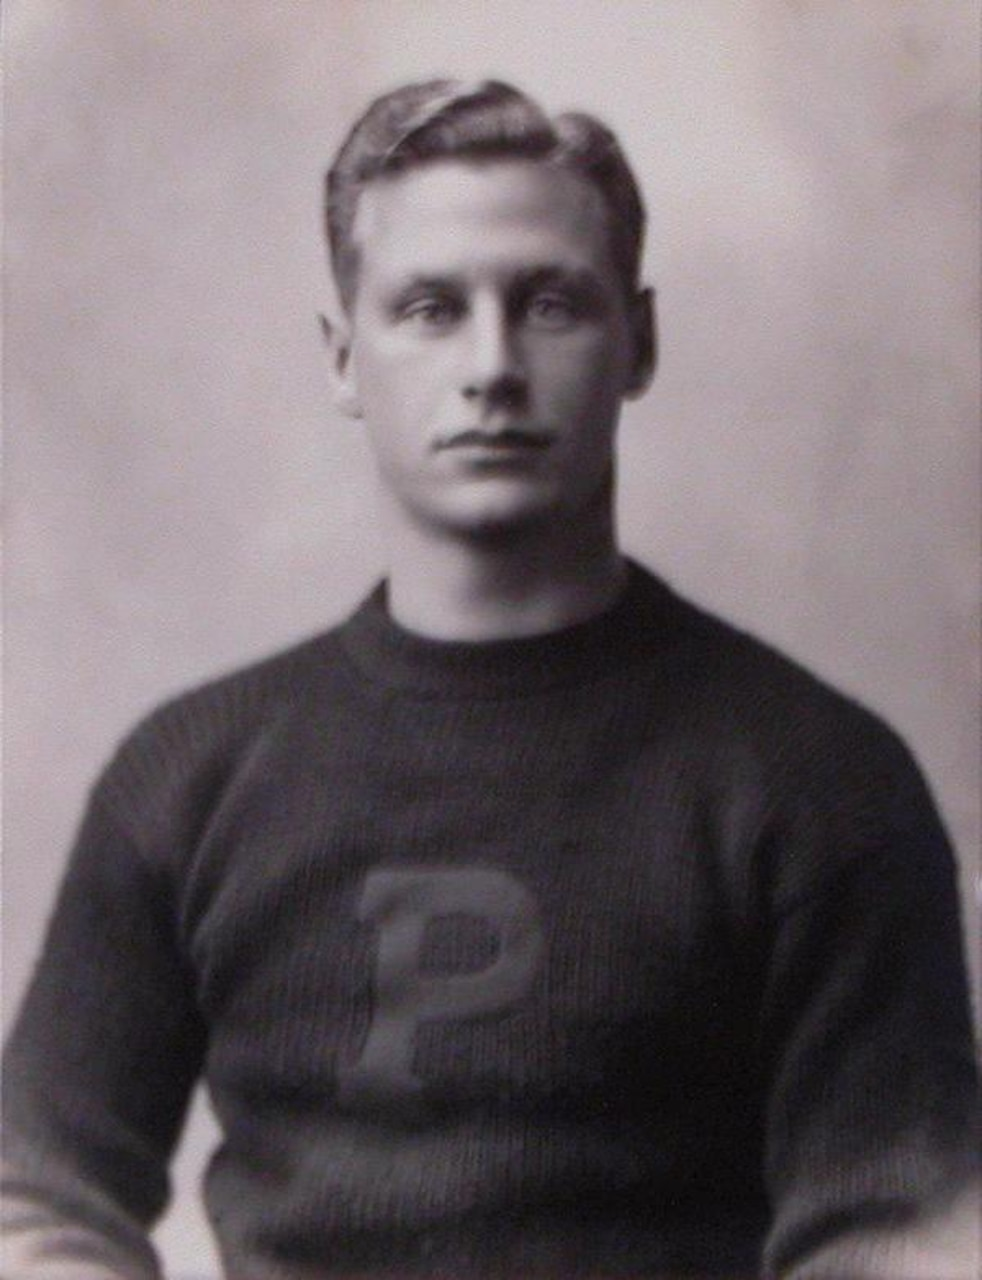 A man in a Princeton letter sweater poses for a photo.